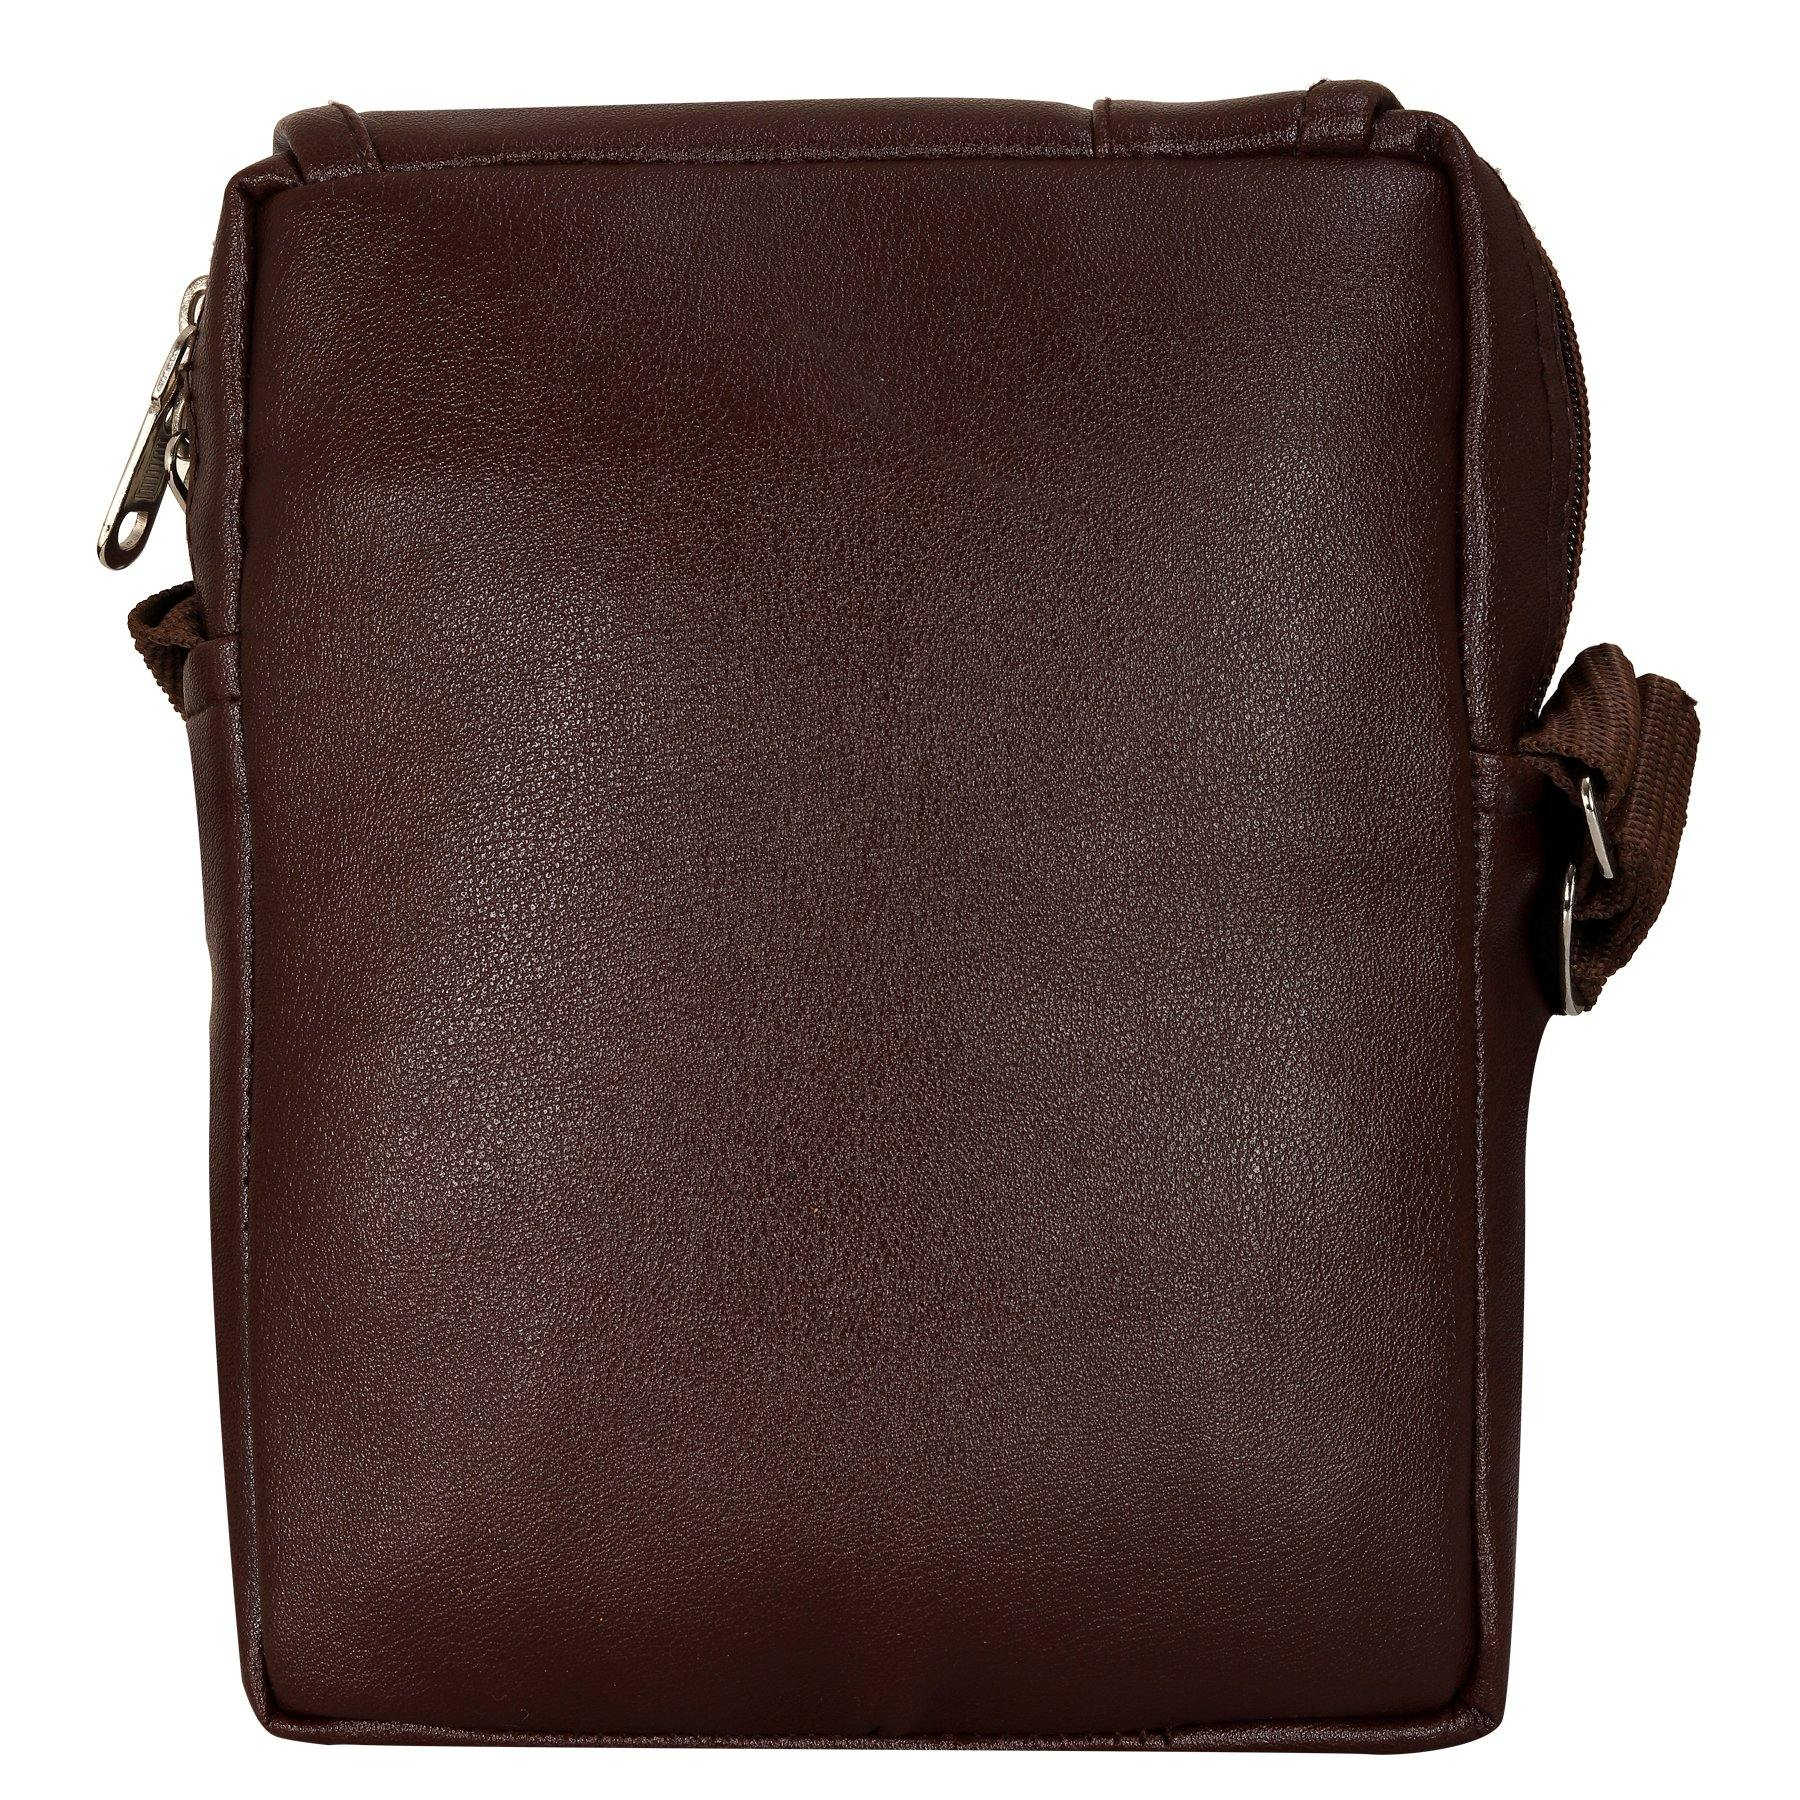 Leather World Unisex Sling Bag